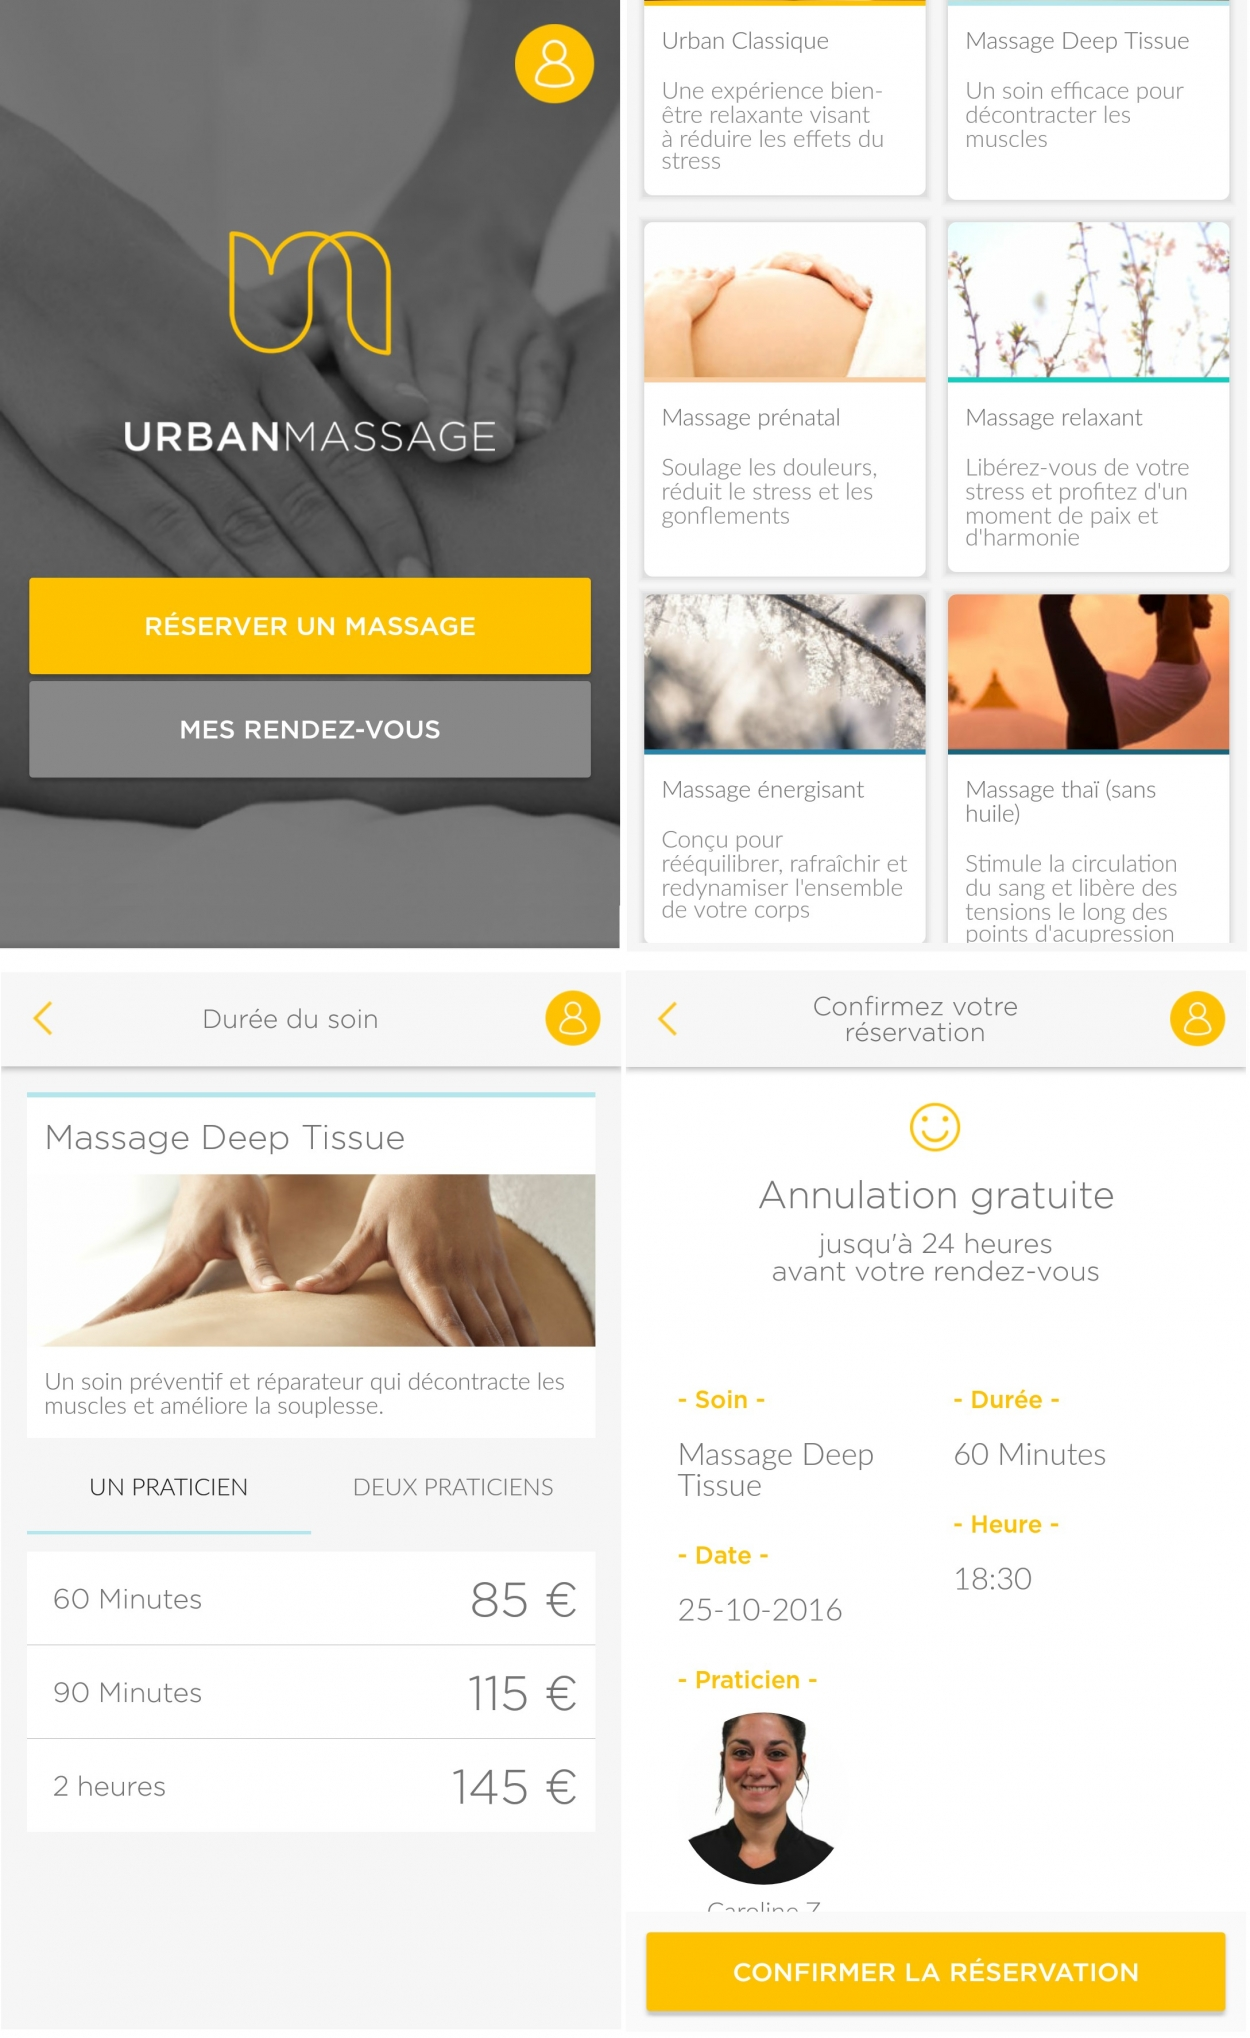 urban-massage-application-reservation